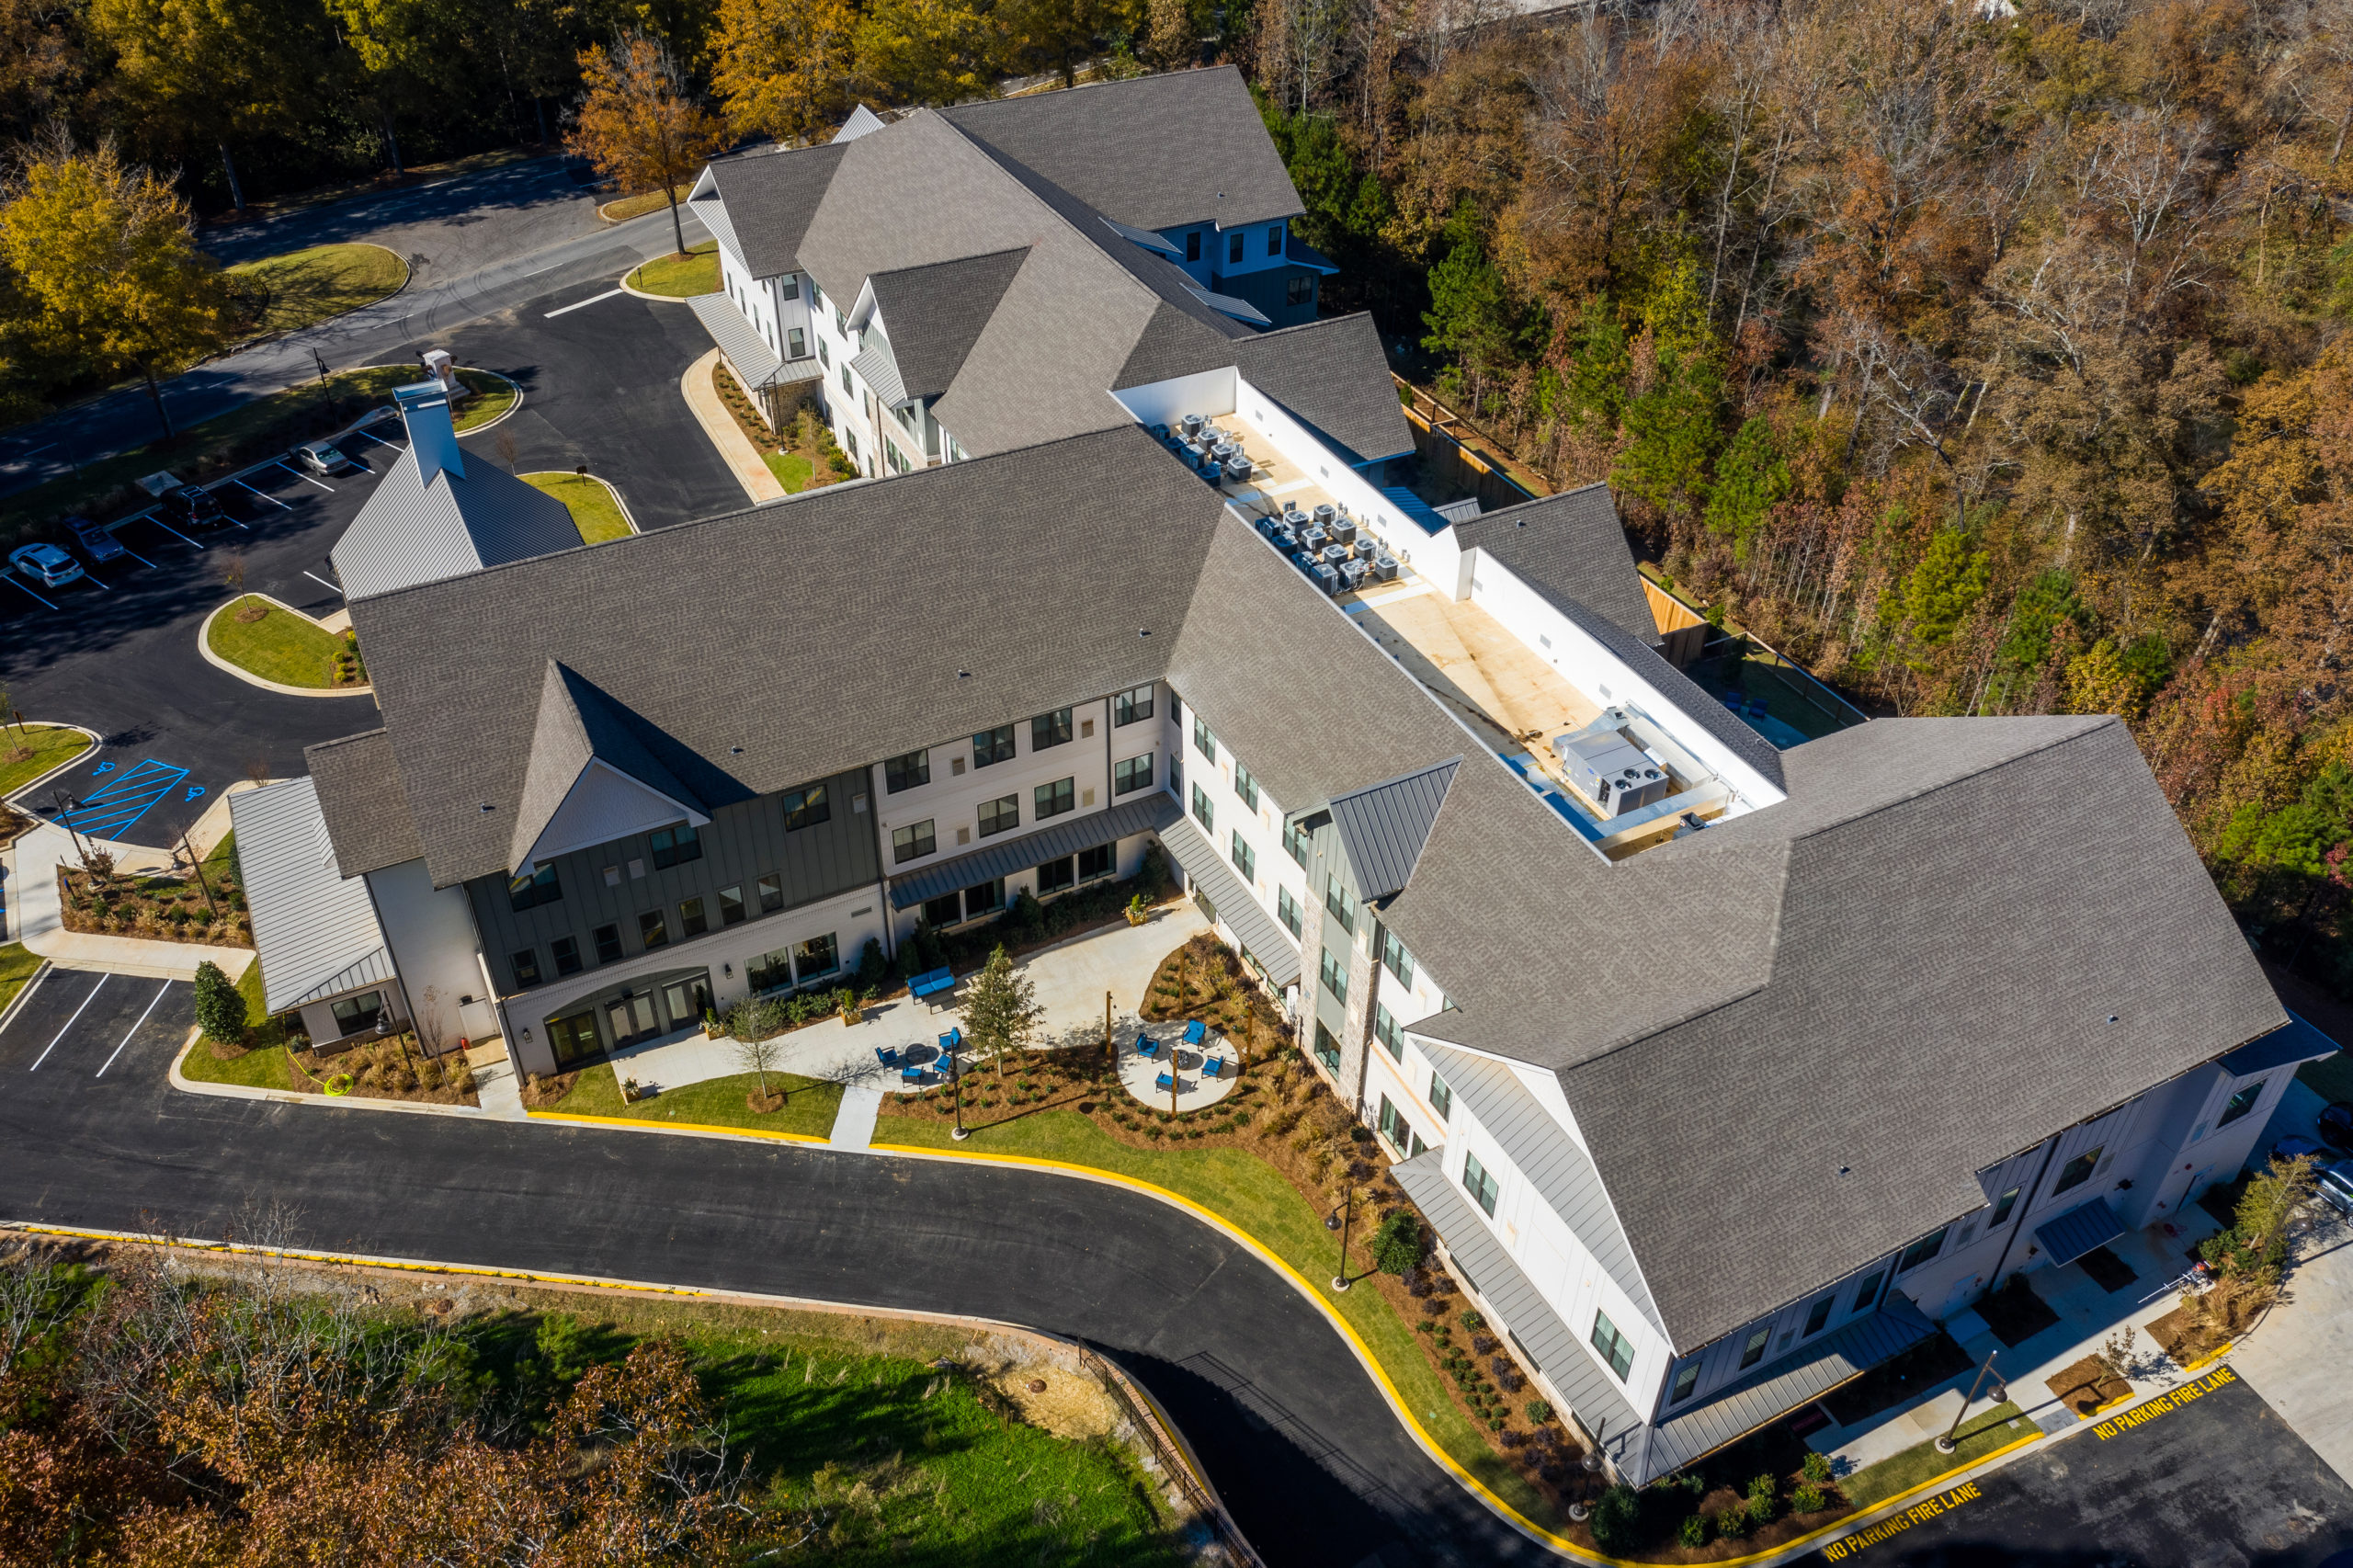 Aerial view of back of Longleaf community with blue patio furniture in view and treed area to right